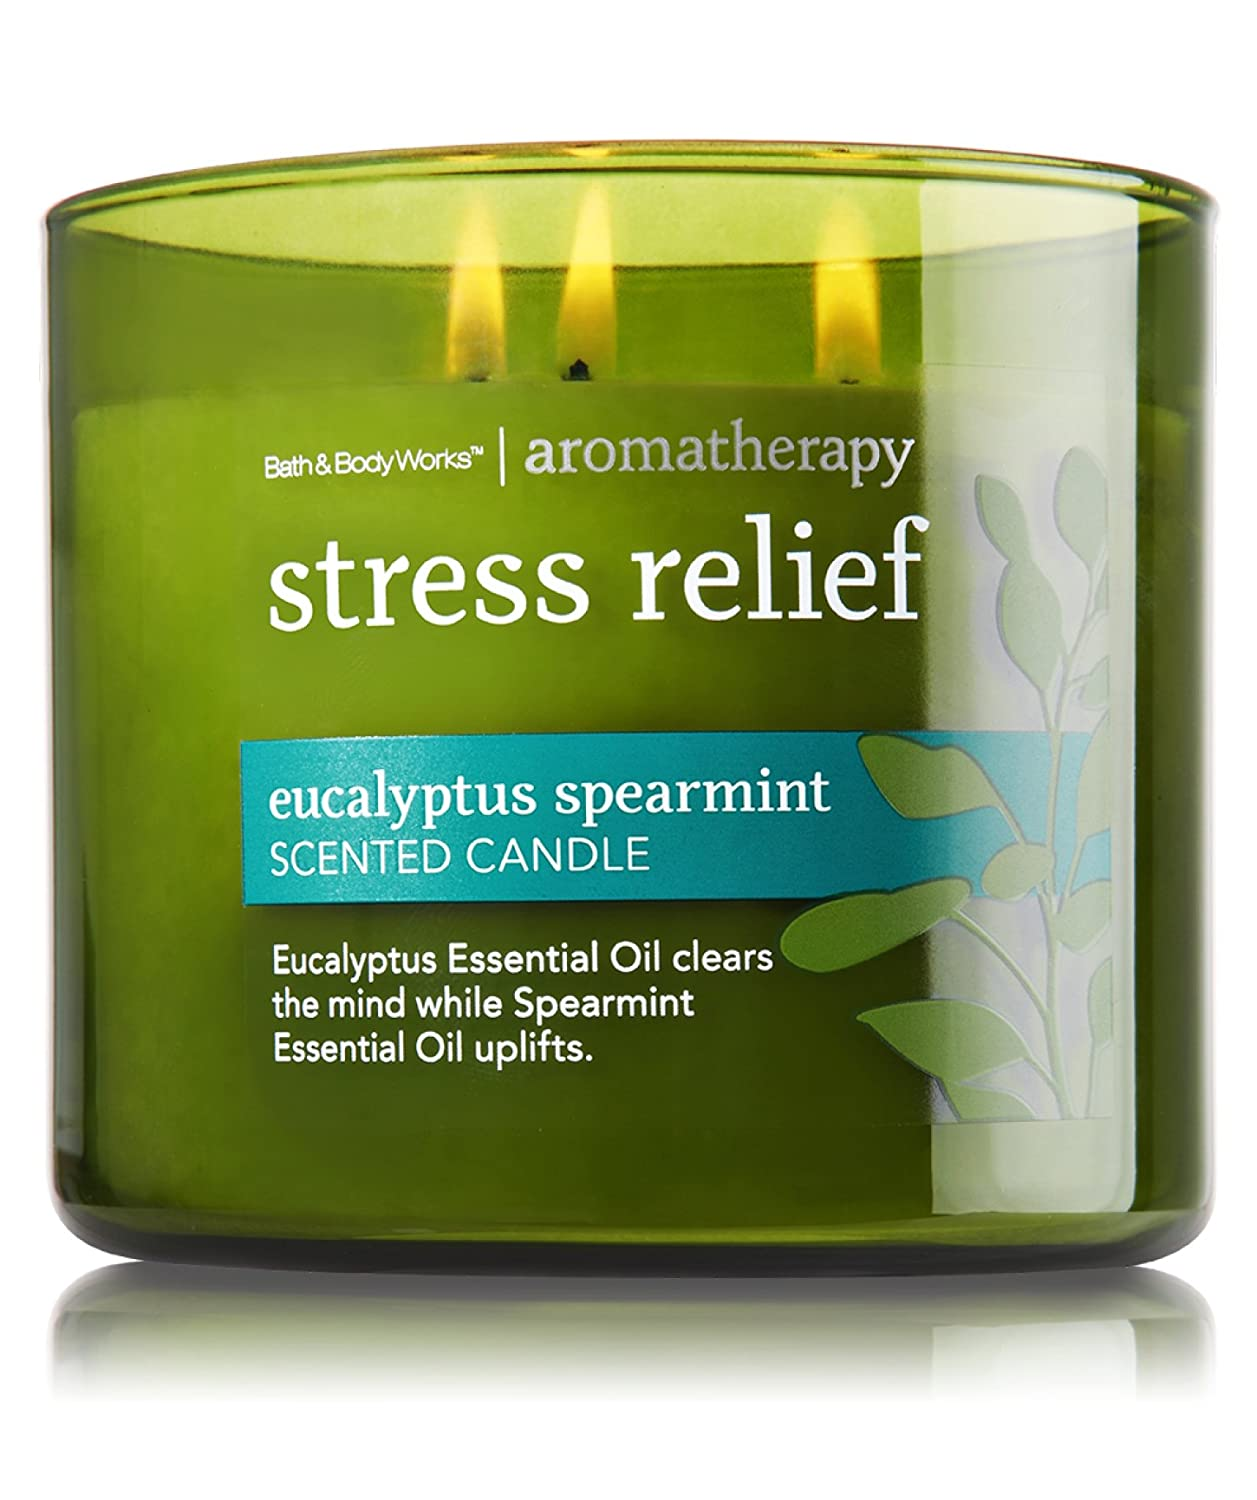 Bath & Body Works, Aromatherapy 3-Wick Candle